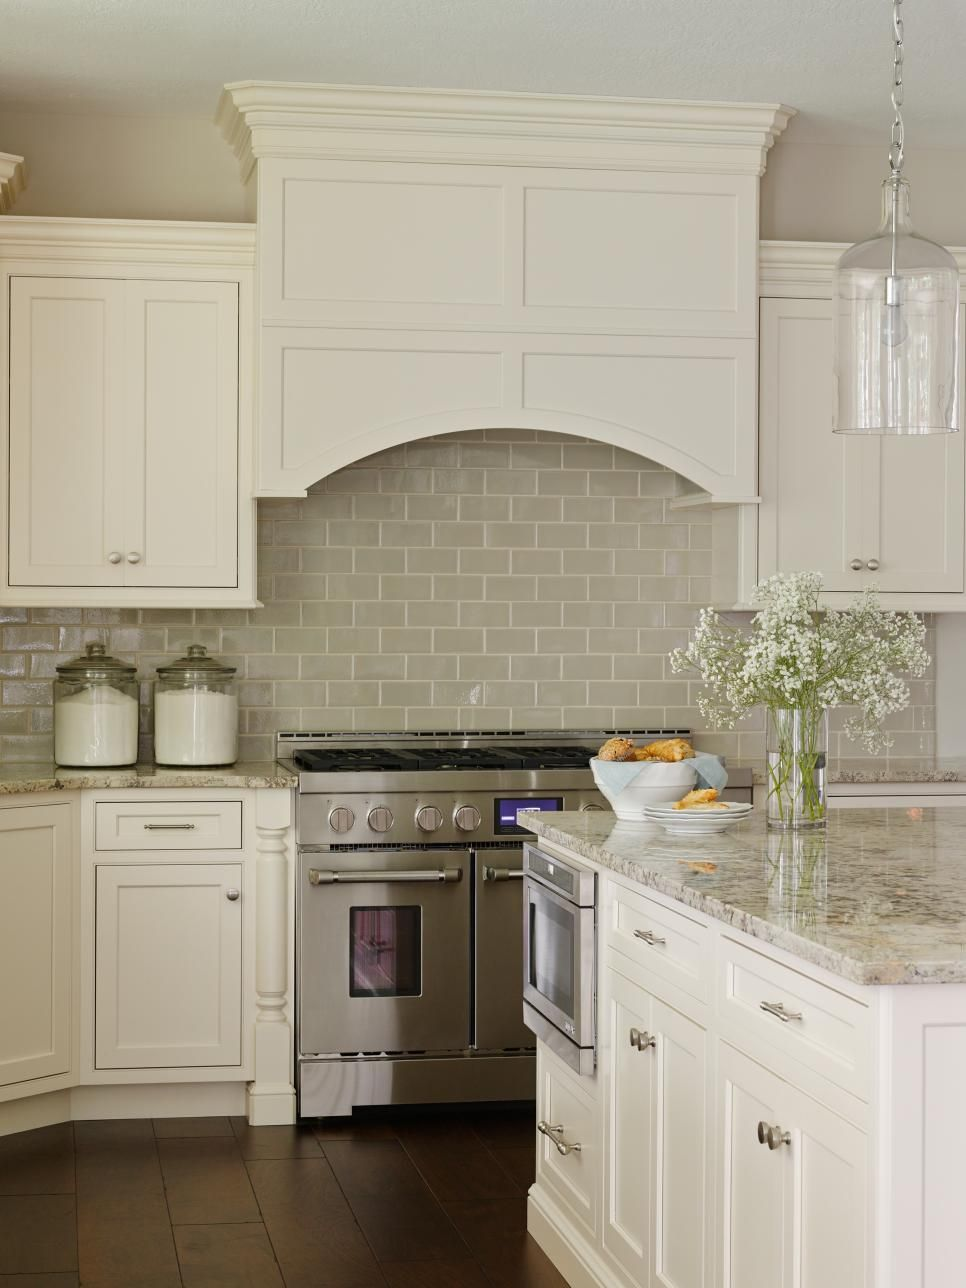 creamy dreamy traditional kitchen traditional white kitchens creamy dreamy traditional kitchen backsplash ideaskitchen